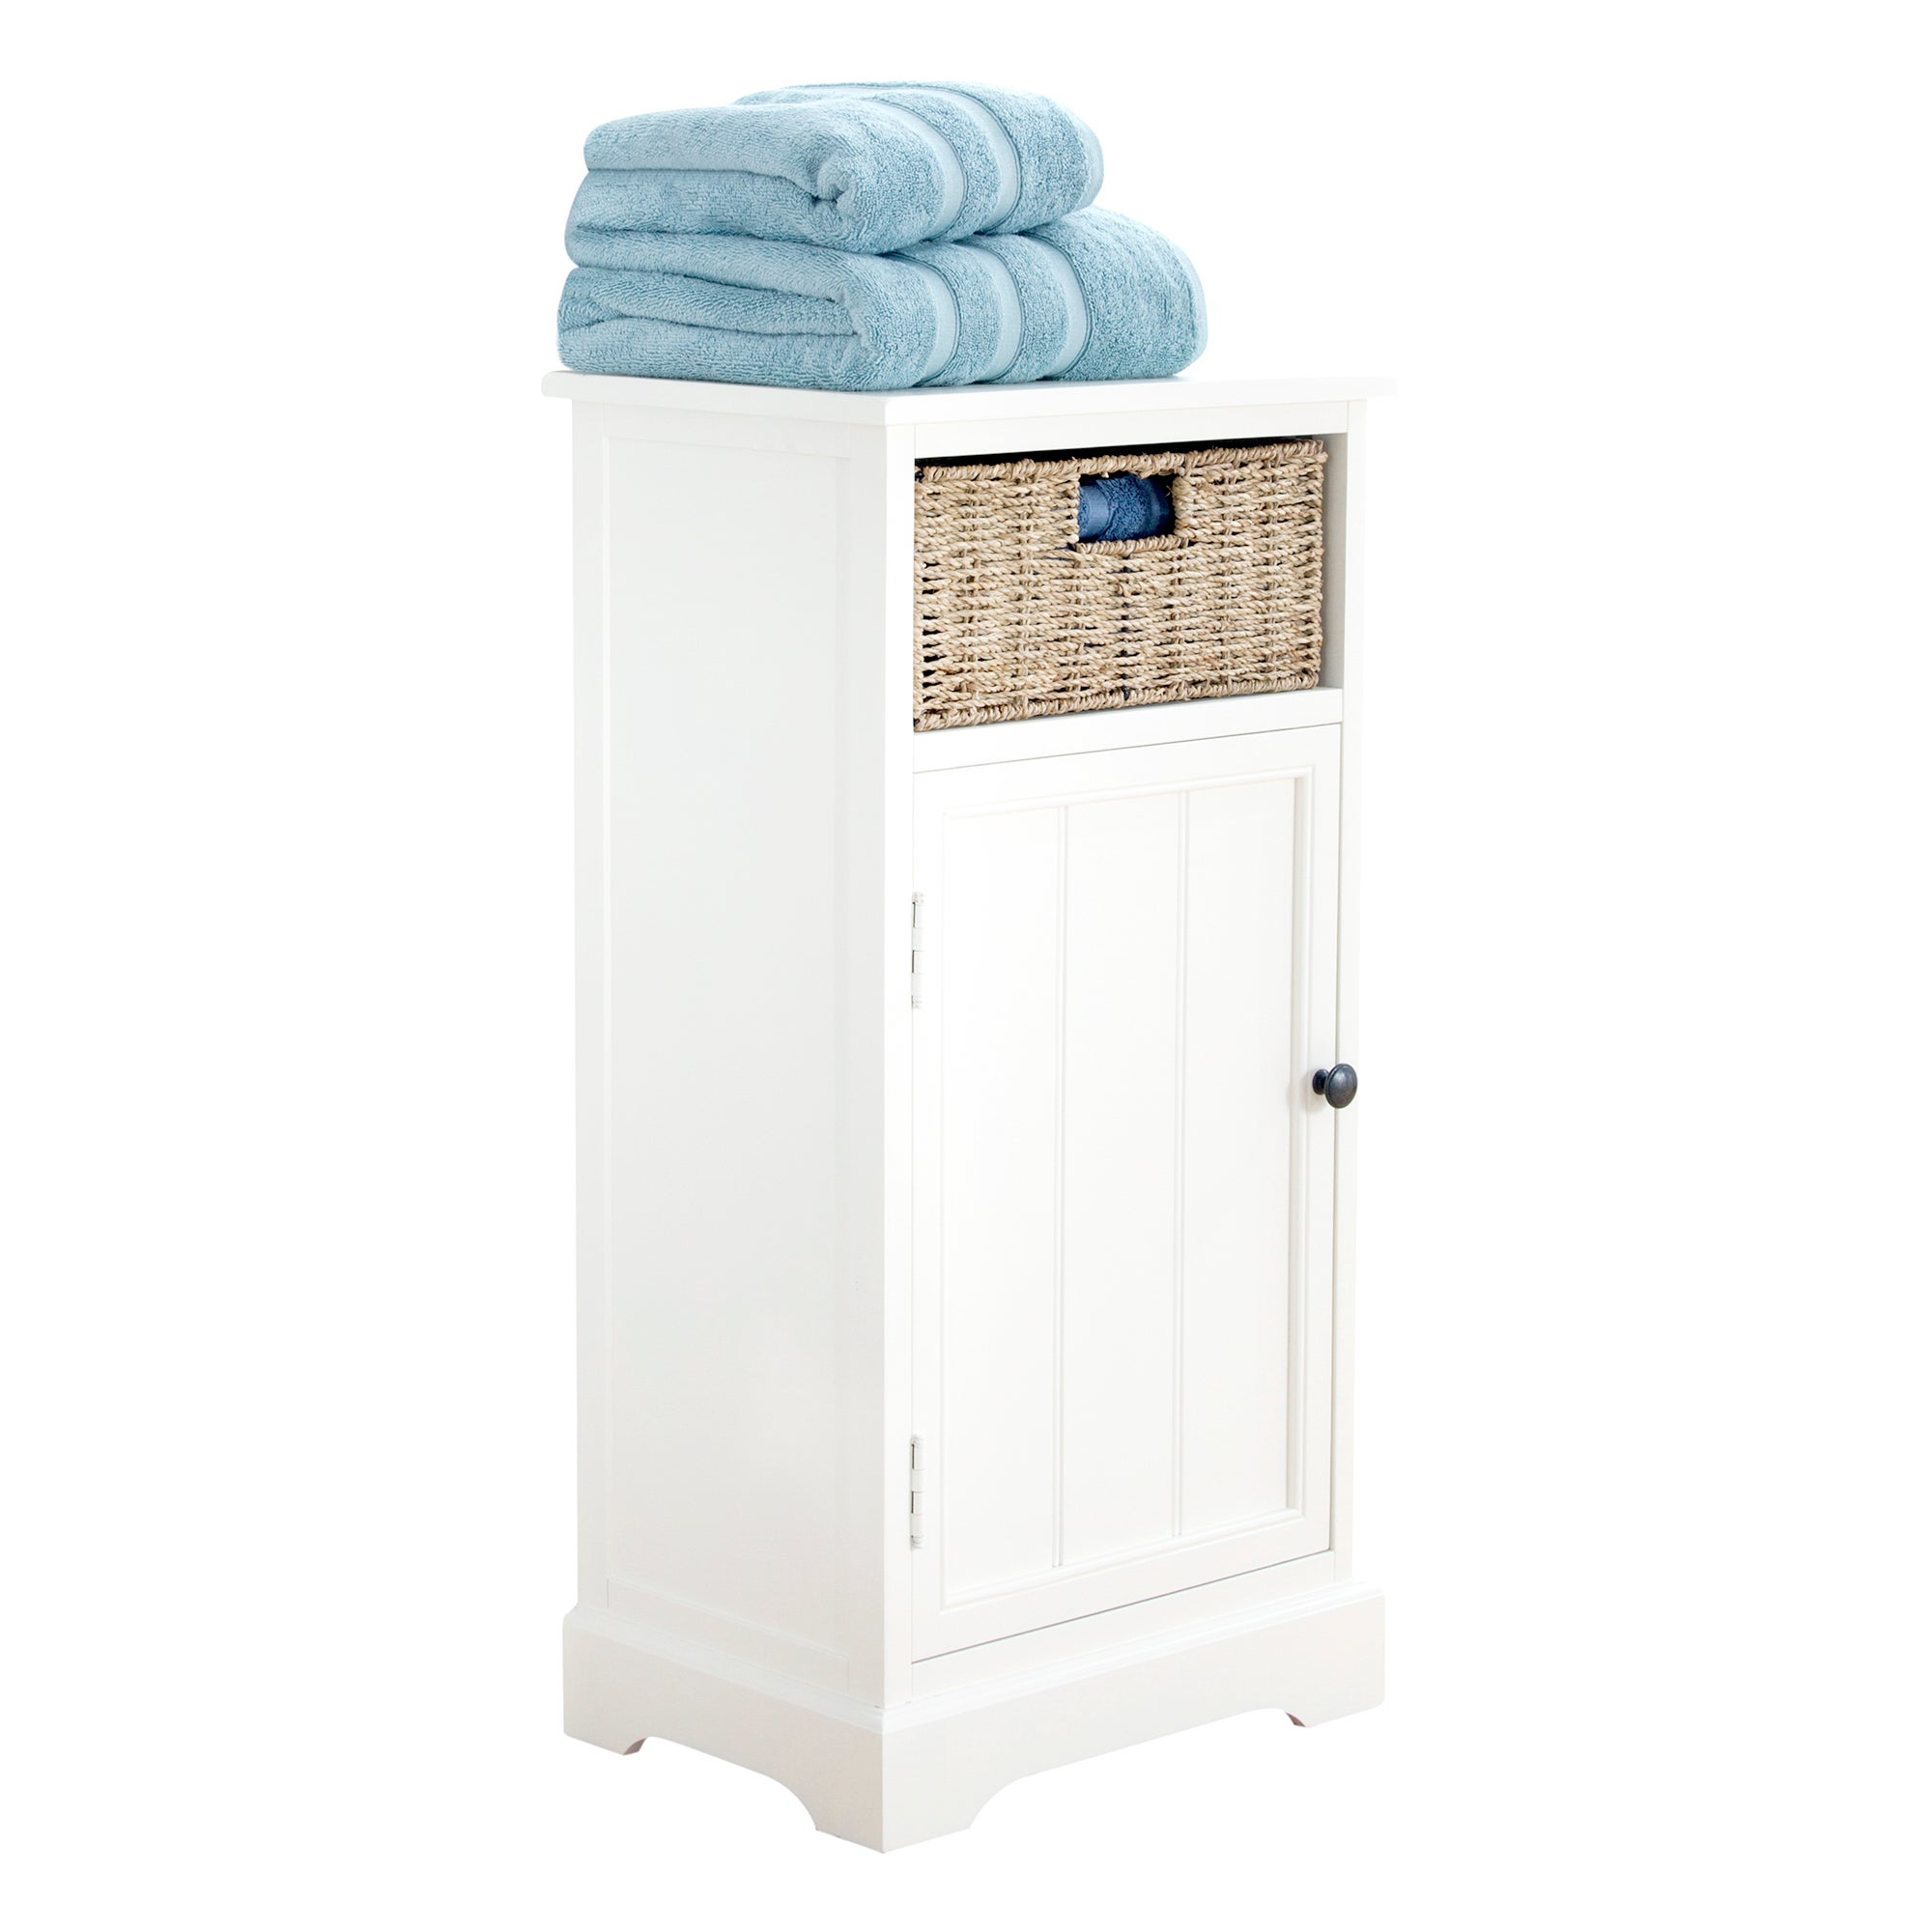 Calais Door and Basket Unit